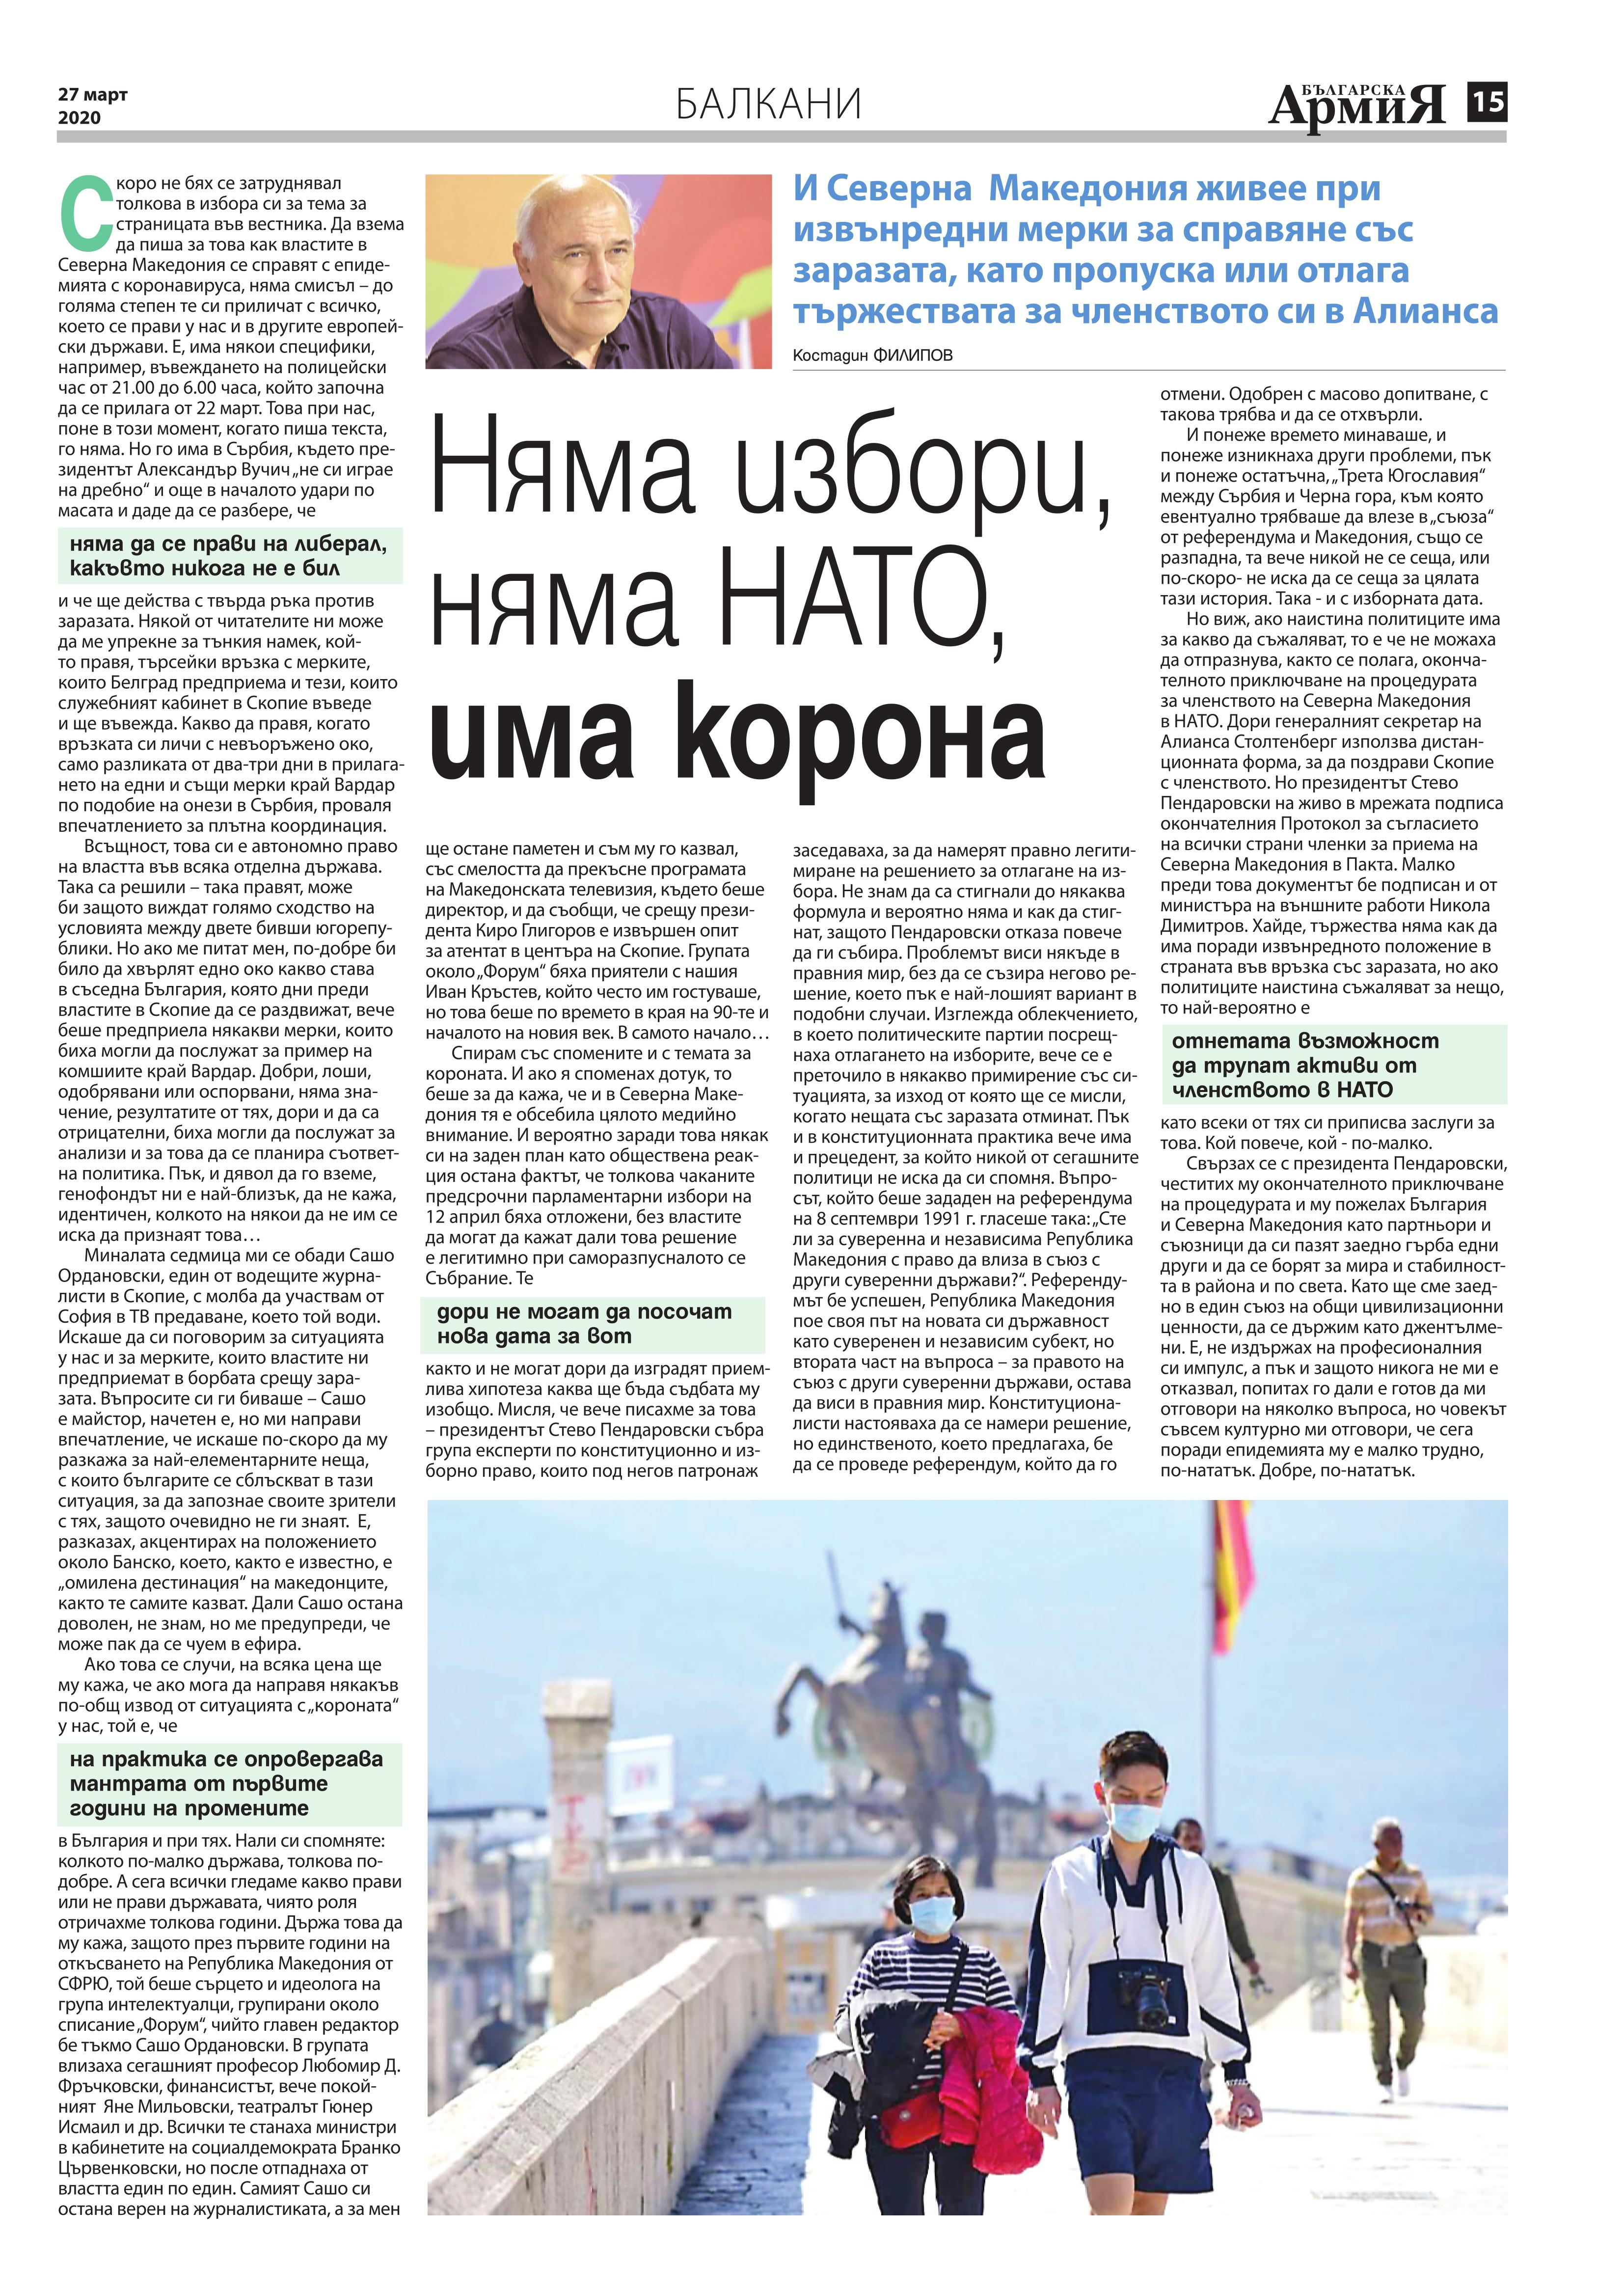 https://armymedia.bg/wp-content/uploads/2015/06/15.page1_-132.jpg